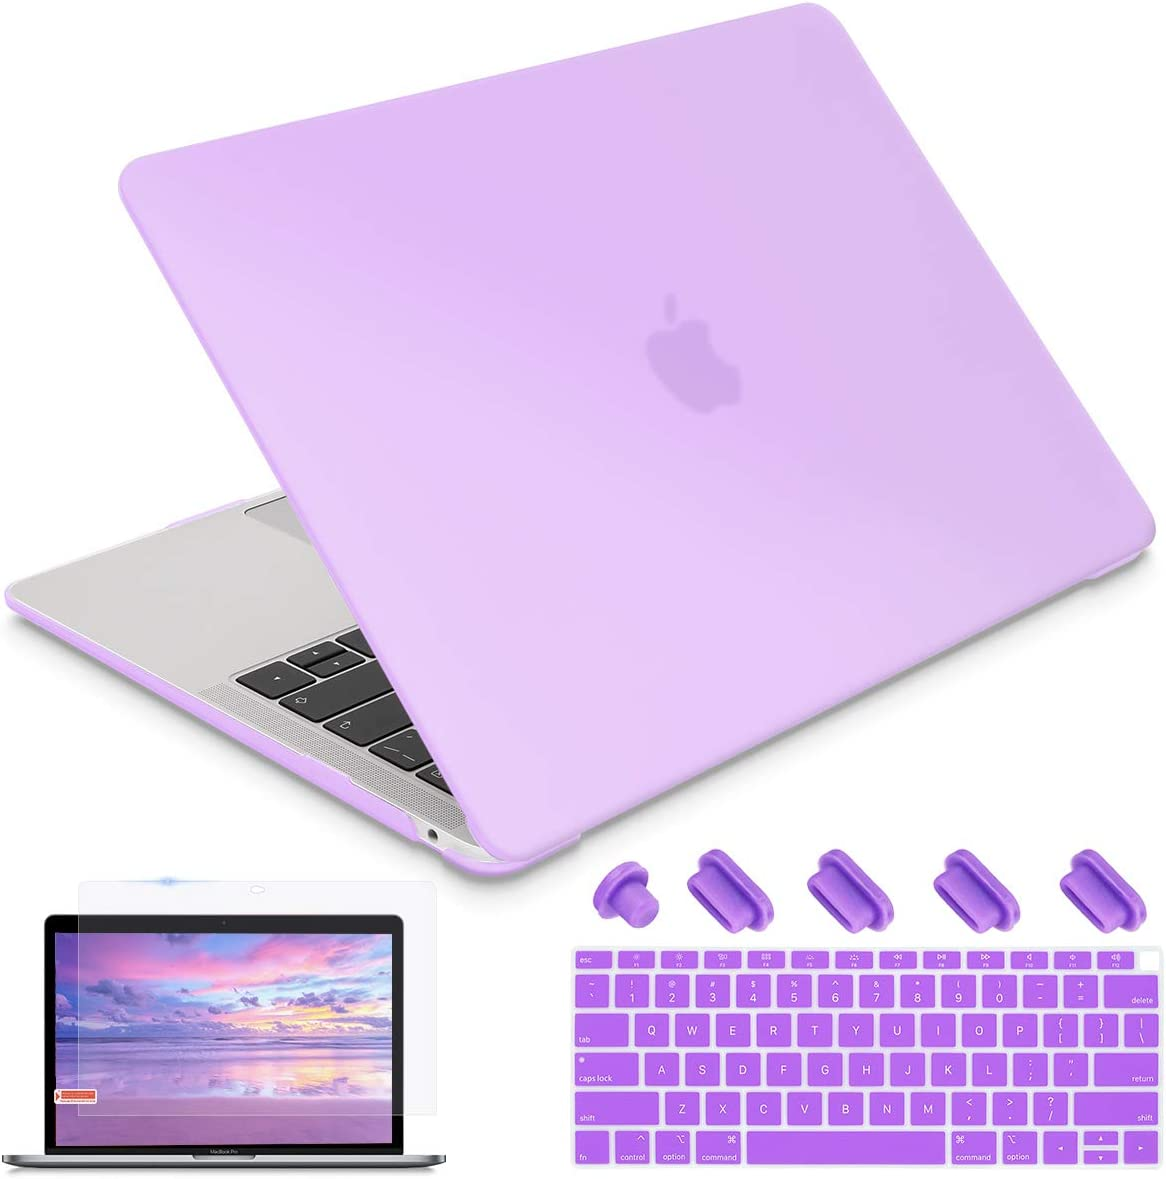 i-King Newest MacBook Air 13 2020 2019 2018 A1932 A2179 Laptop case,Plastic Smooth Frosted Hard Shell Cover Case for MacBook Air 13 with Retina Display and Touch ID,Purple